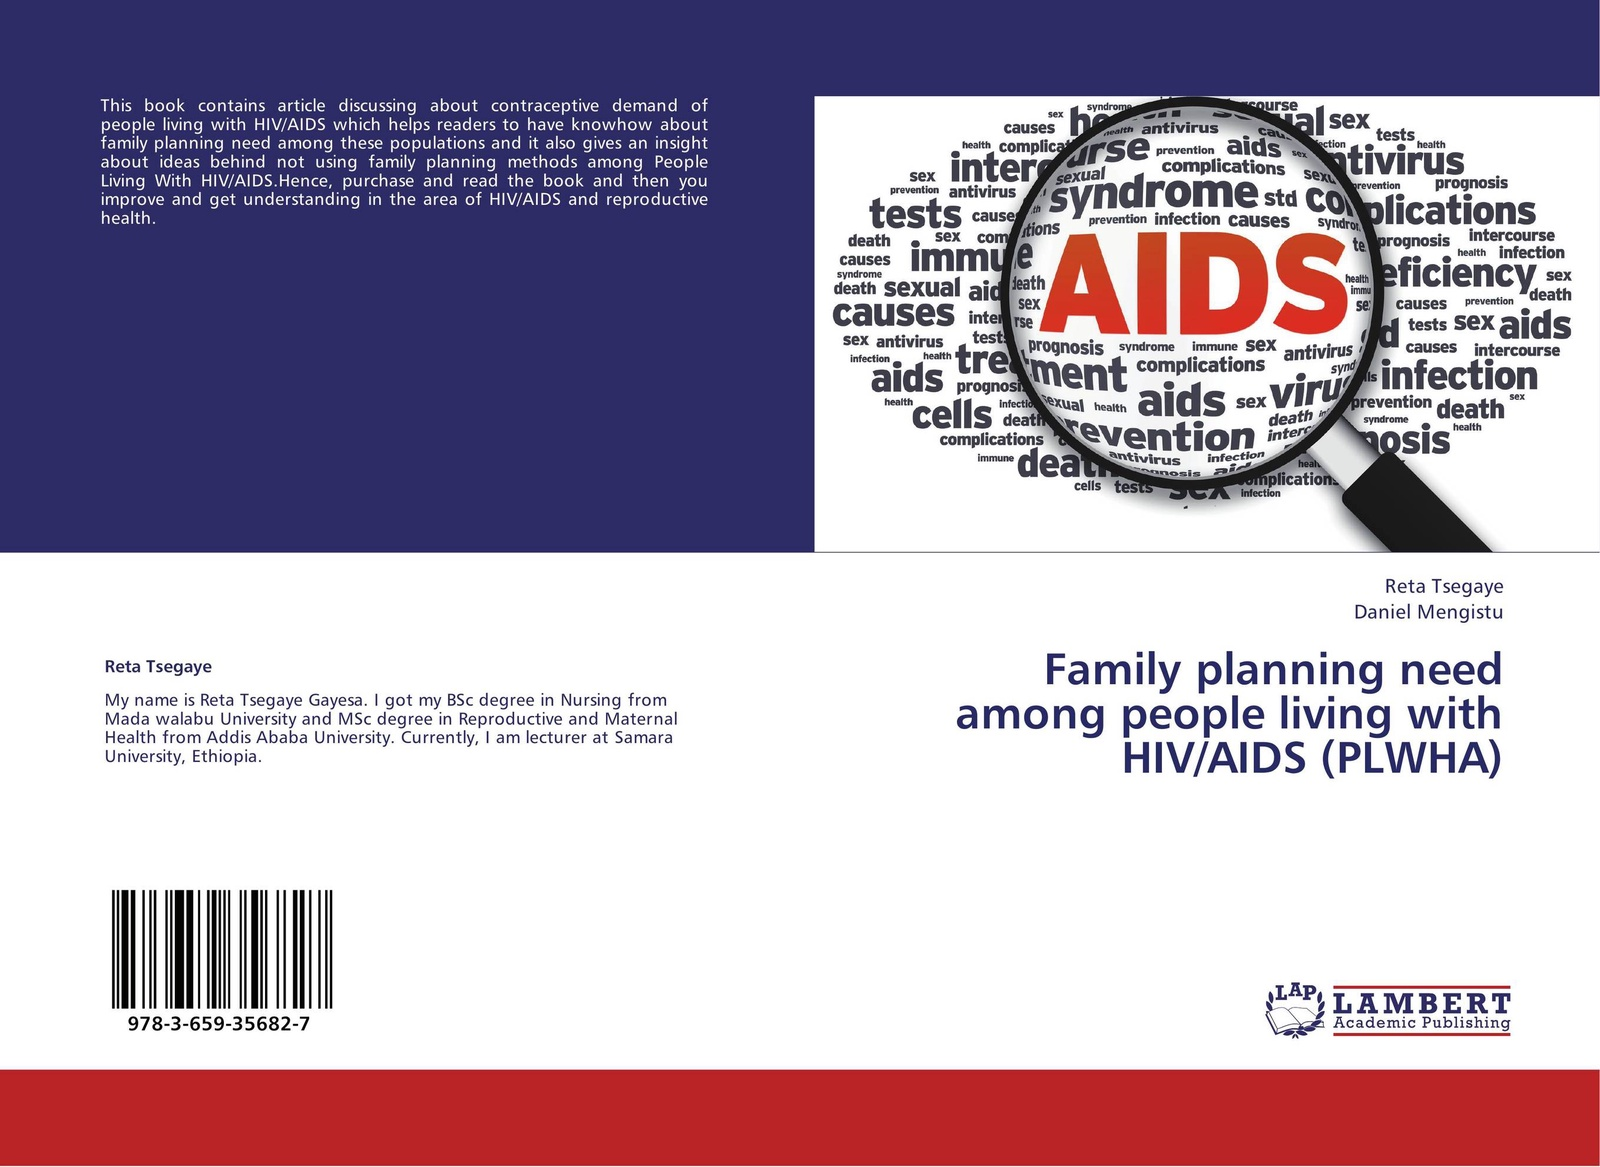 Reta Tsegaye and Daniel Mengistu Family planning need among people living with HIV/AIDS (PLWHA) mental health and hiv aids